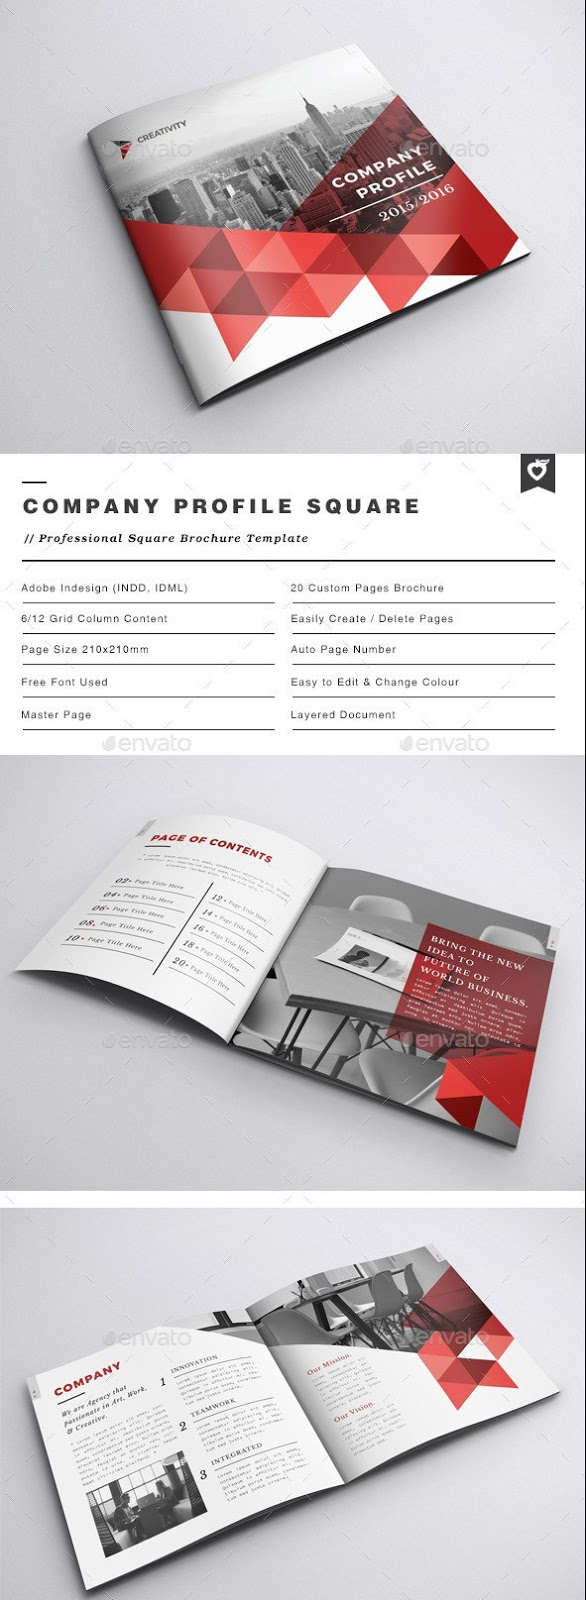 100 free premium brochure templates photoshop psd for Free brochure templates for indesign